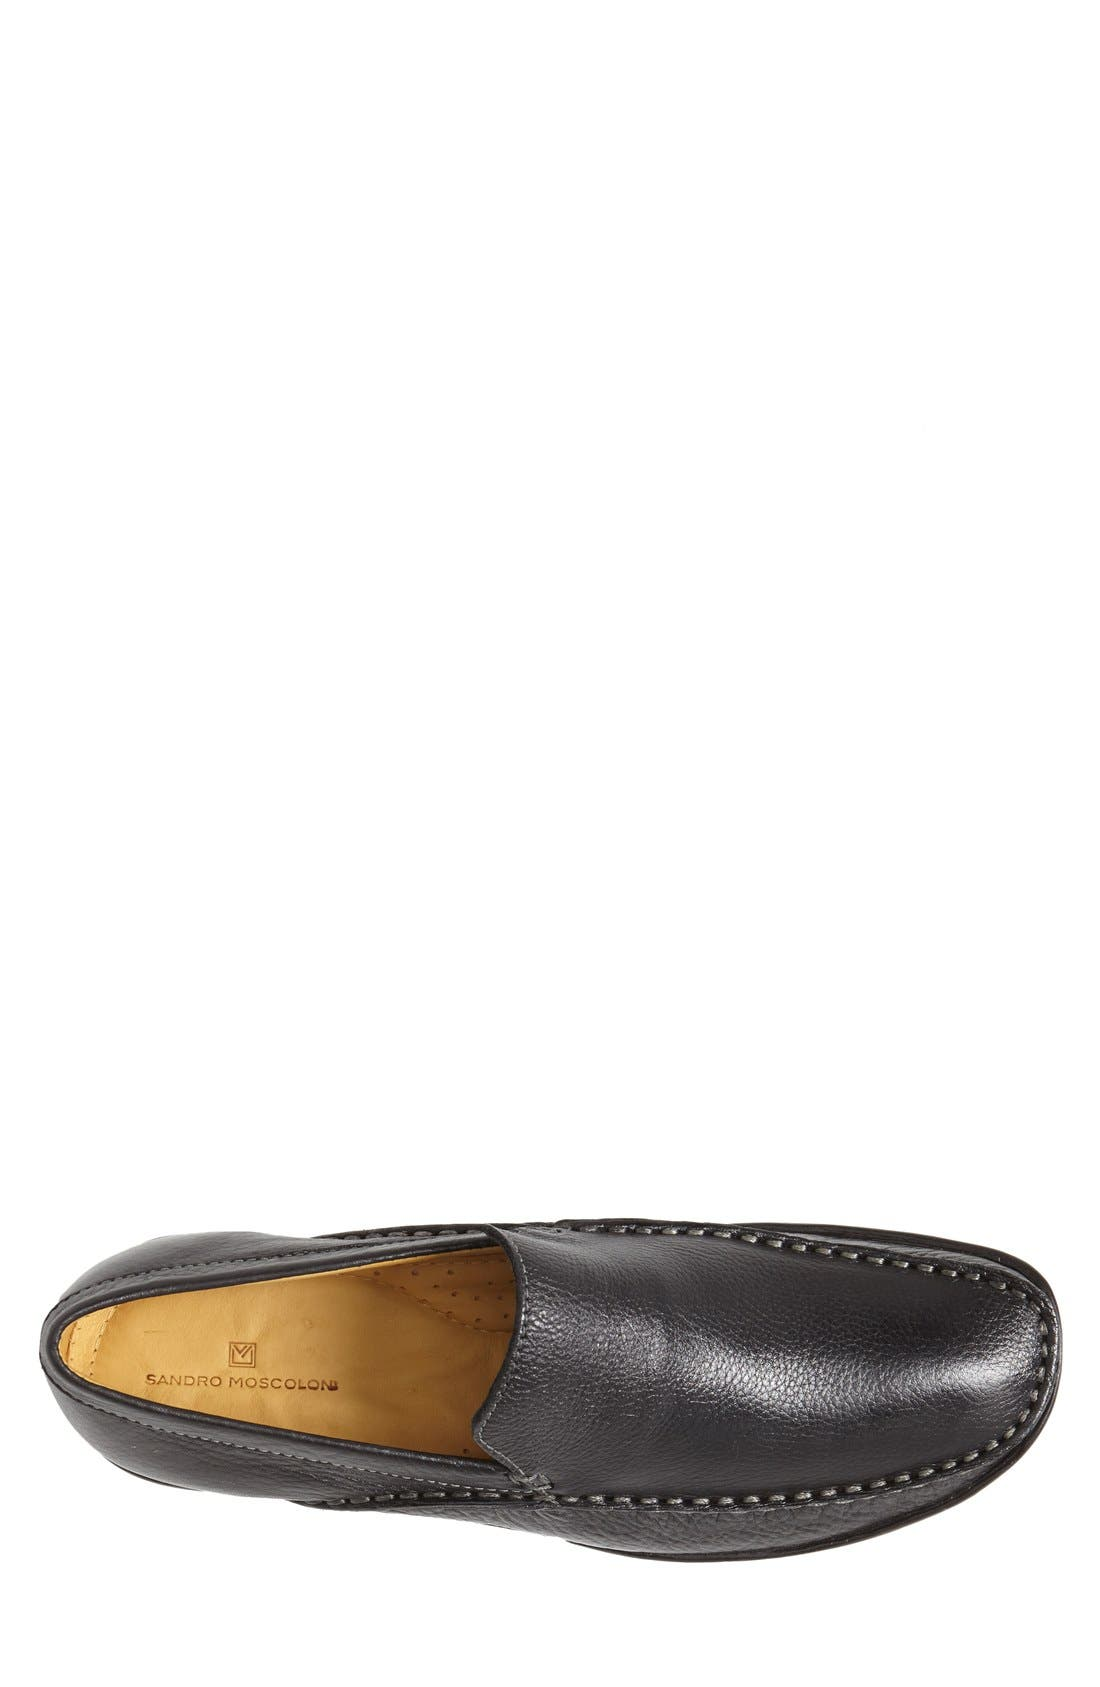 Alternate Image 3  - Sandro Moscoloni 'Dillon' Loafer (Men)